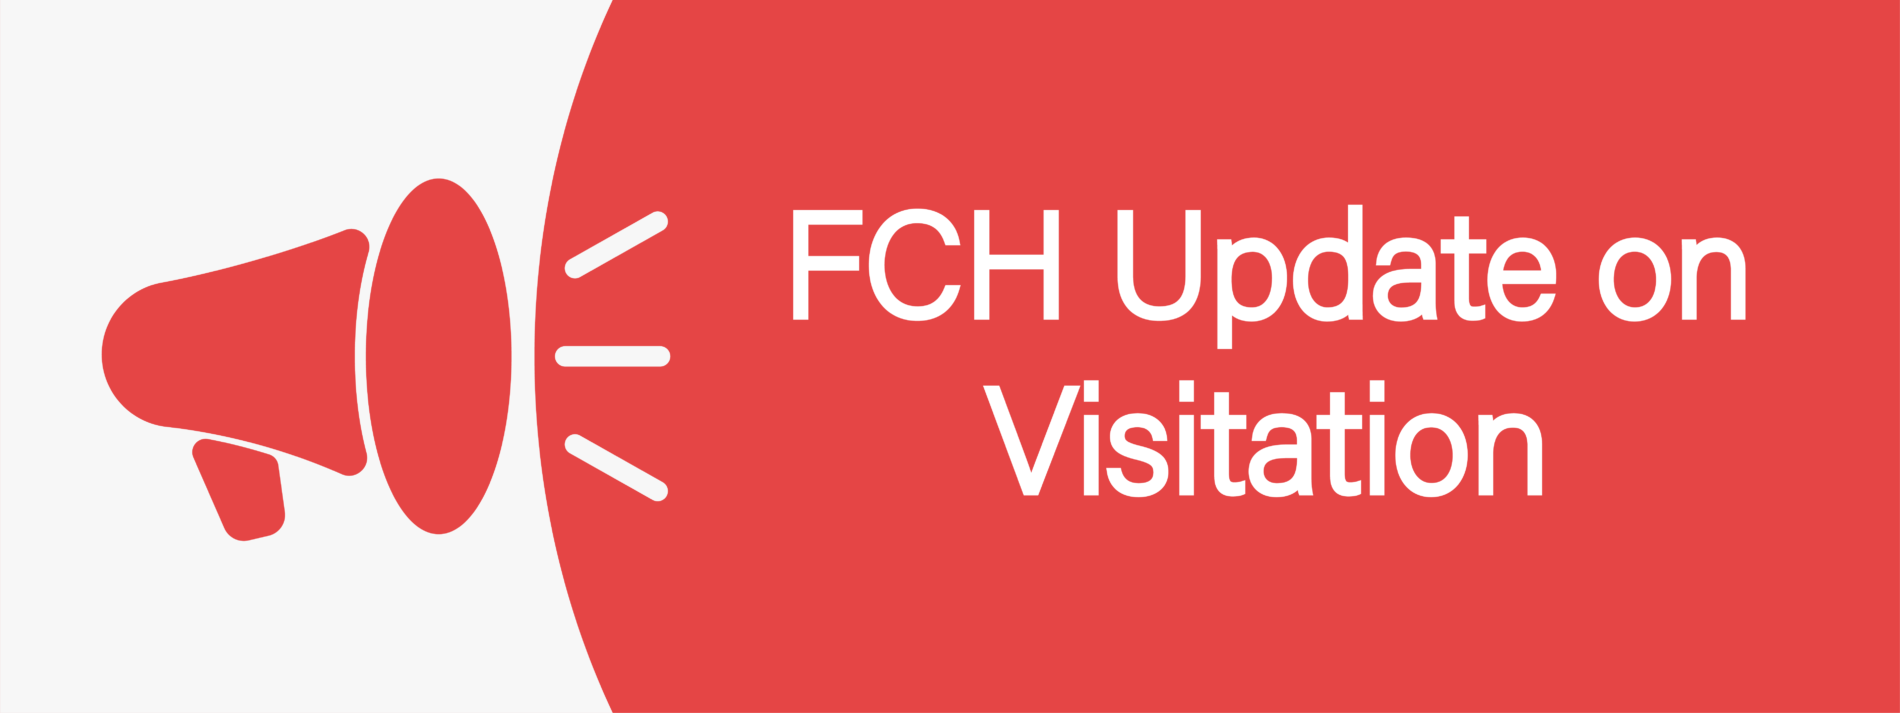 Changes to Visitation at Fillmore County Hospital